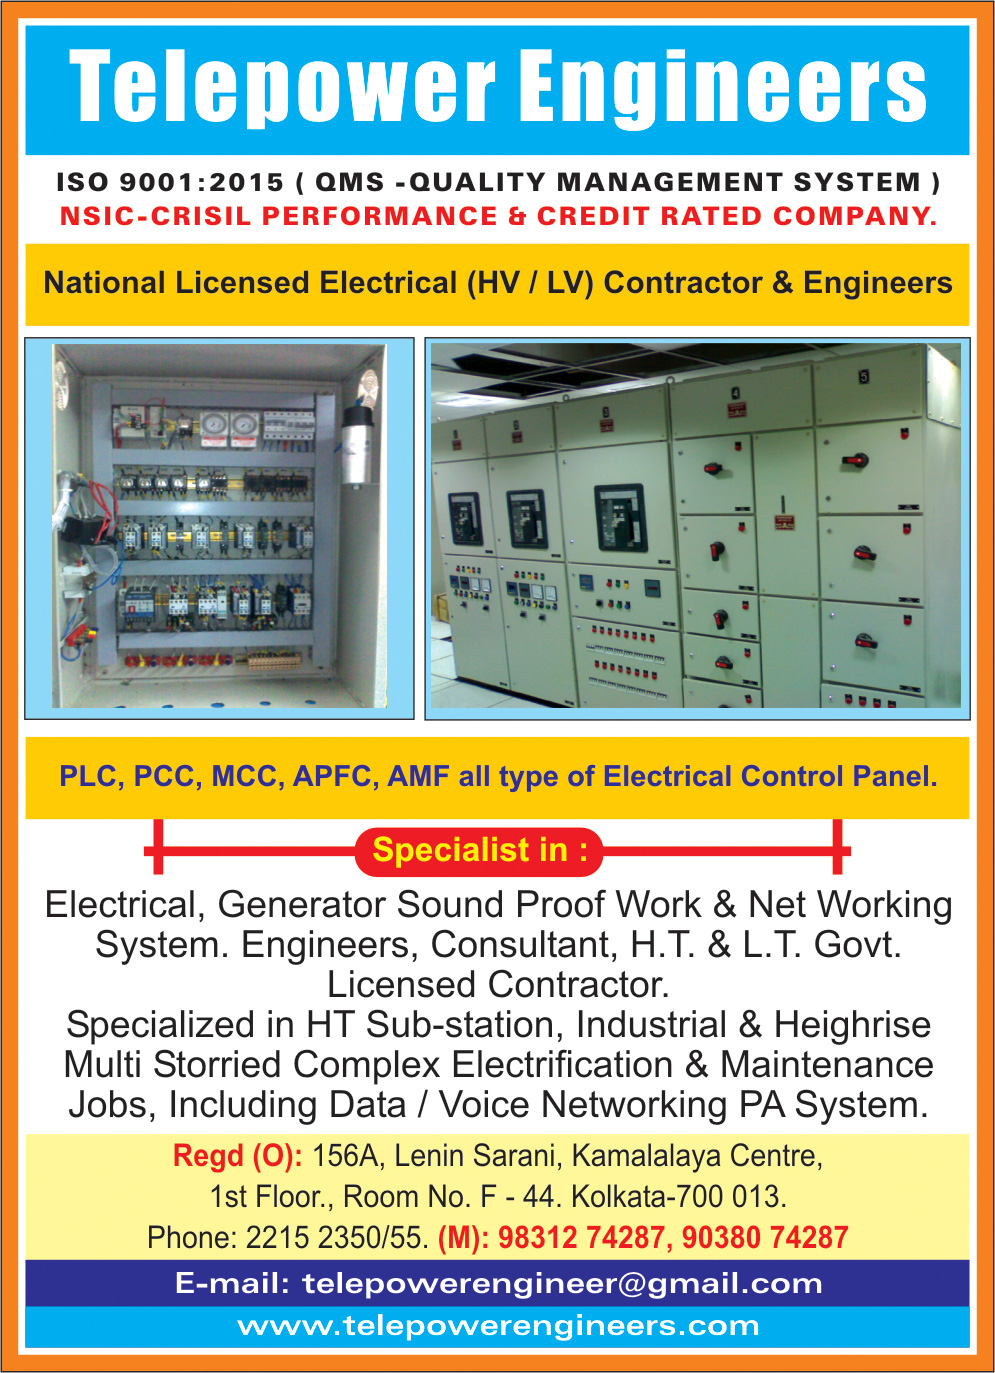 Electrical Consultants and Contractors, TELEPOWER ENGINEERS, Kolkata,  Yellow Pages, Kolkata, West Bengal